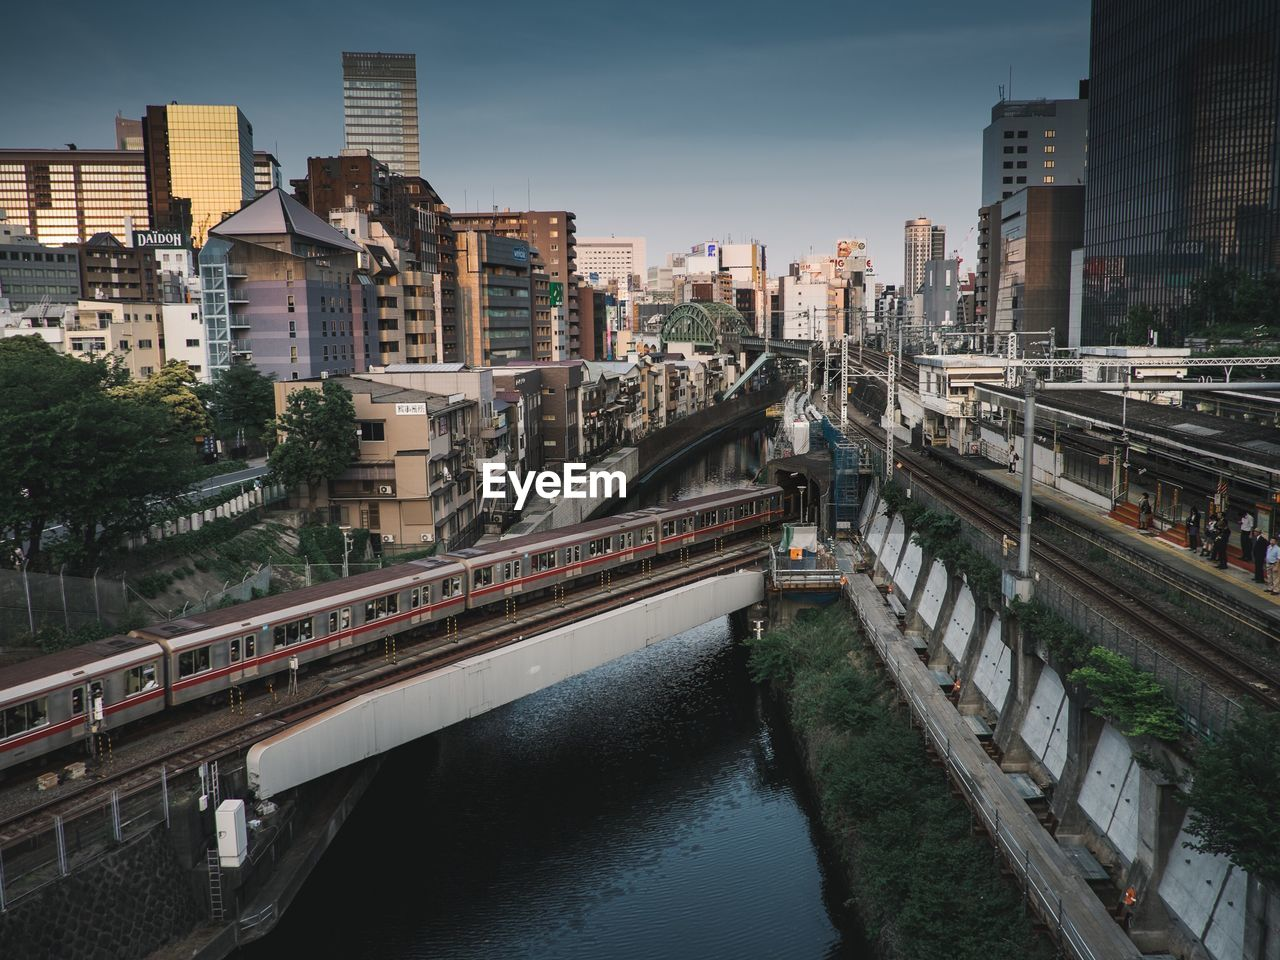 Metro Train Over Canal In City